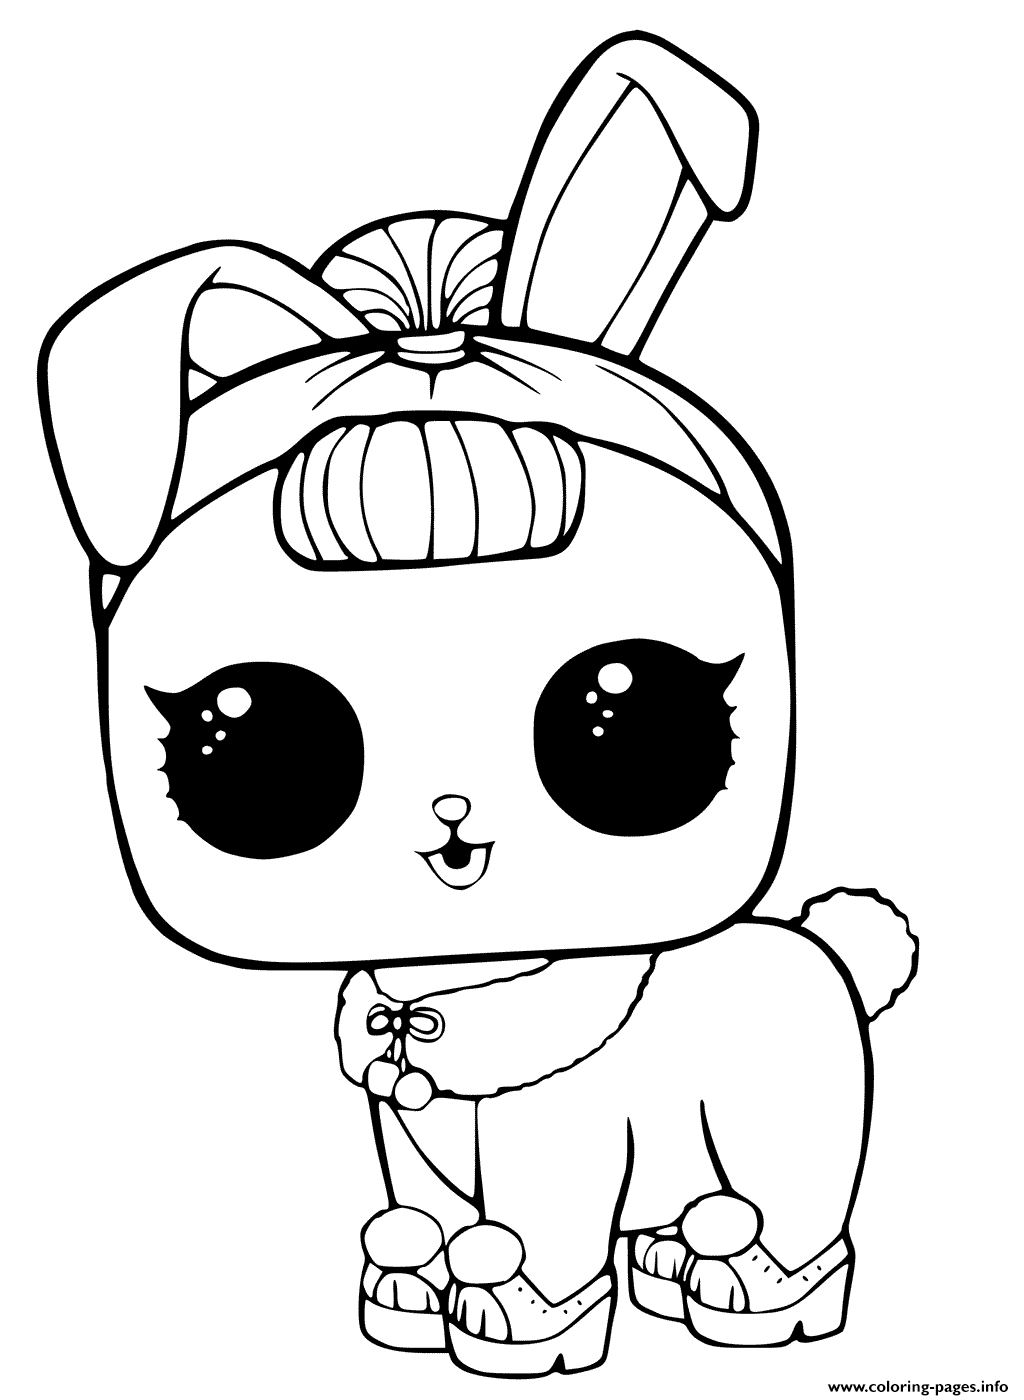 Lol Surprise Pets Coloring Page Crystal Bunny Coloring Pages Printable